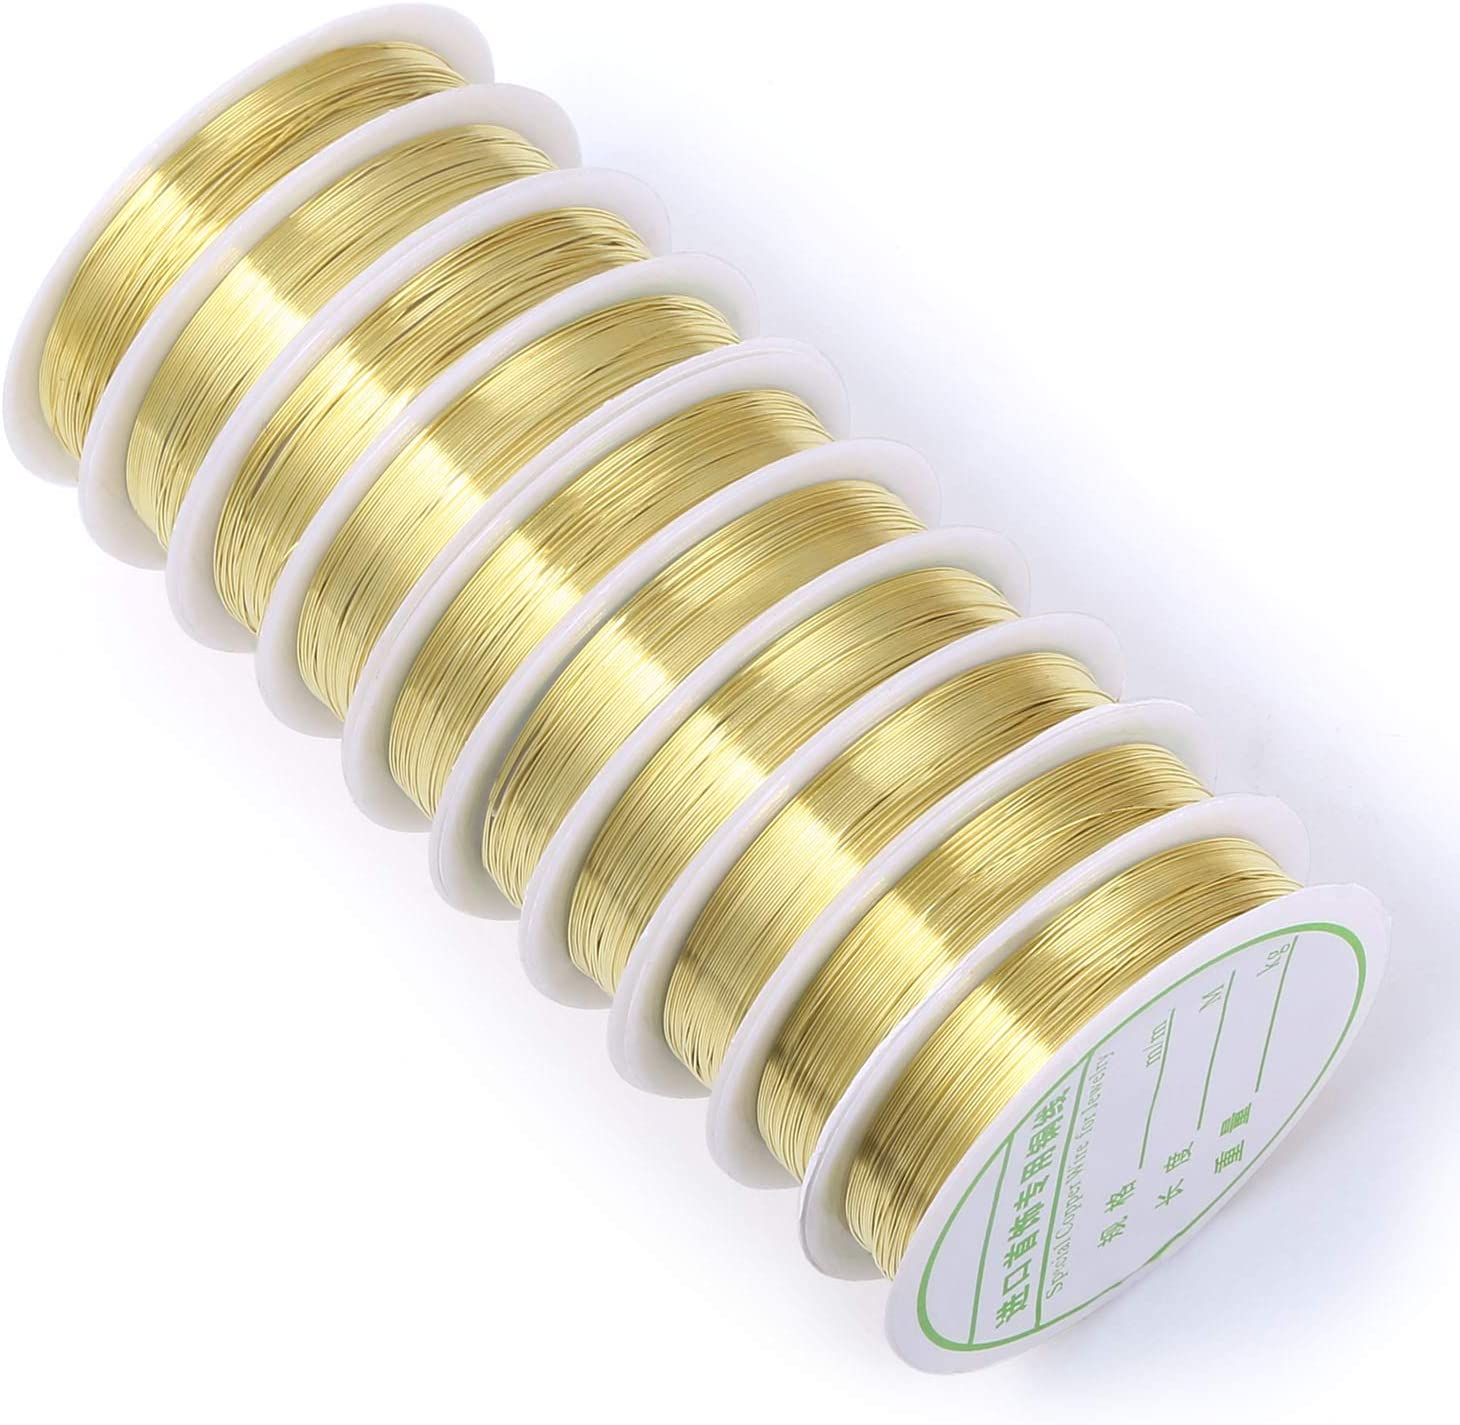 24 Gauge Brass Wire Light Gold Plated Tarnish Resistant Wire Supplies for Jewelry Making and Craft(197-Feet,65-Yard)